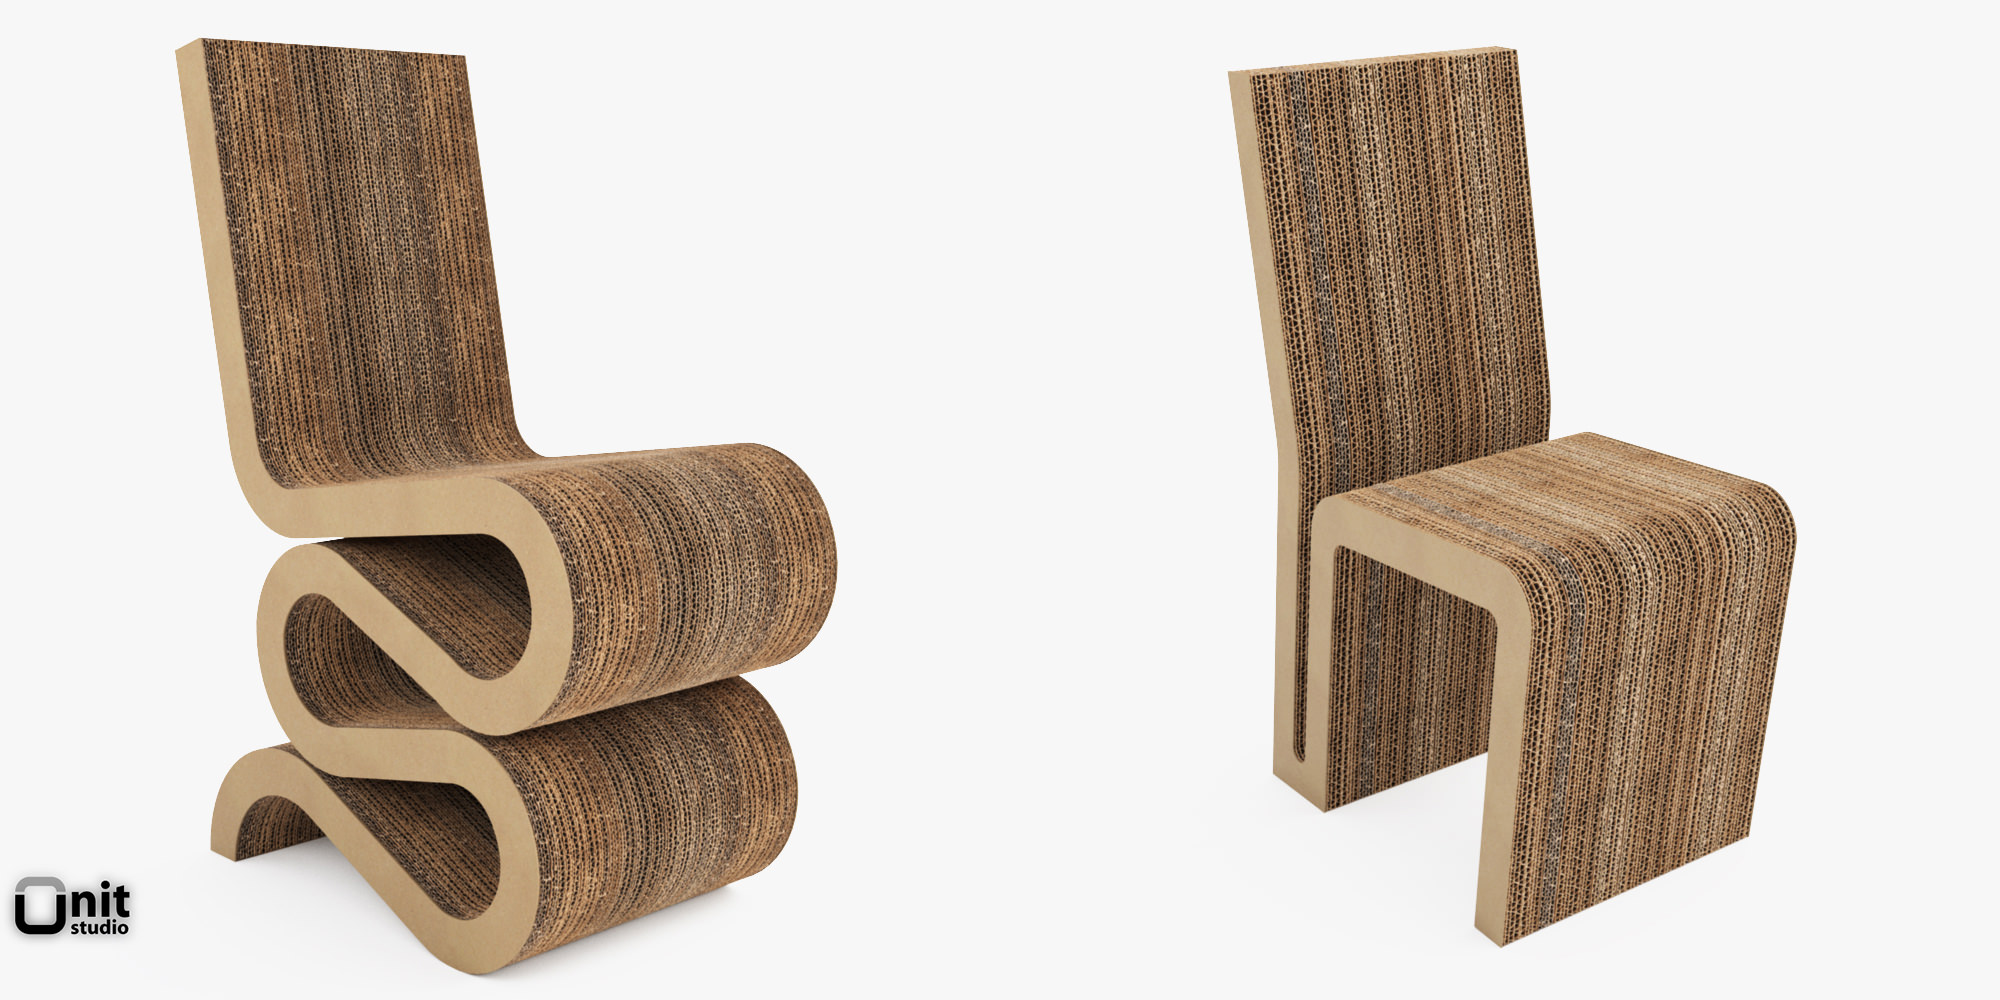 Wiggle And Side Chair By Frank O Gehry 3D Model max obj